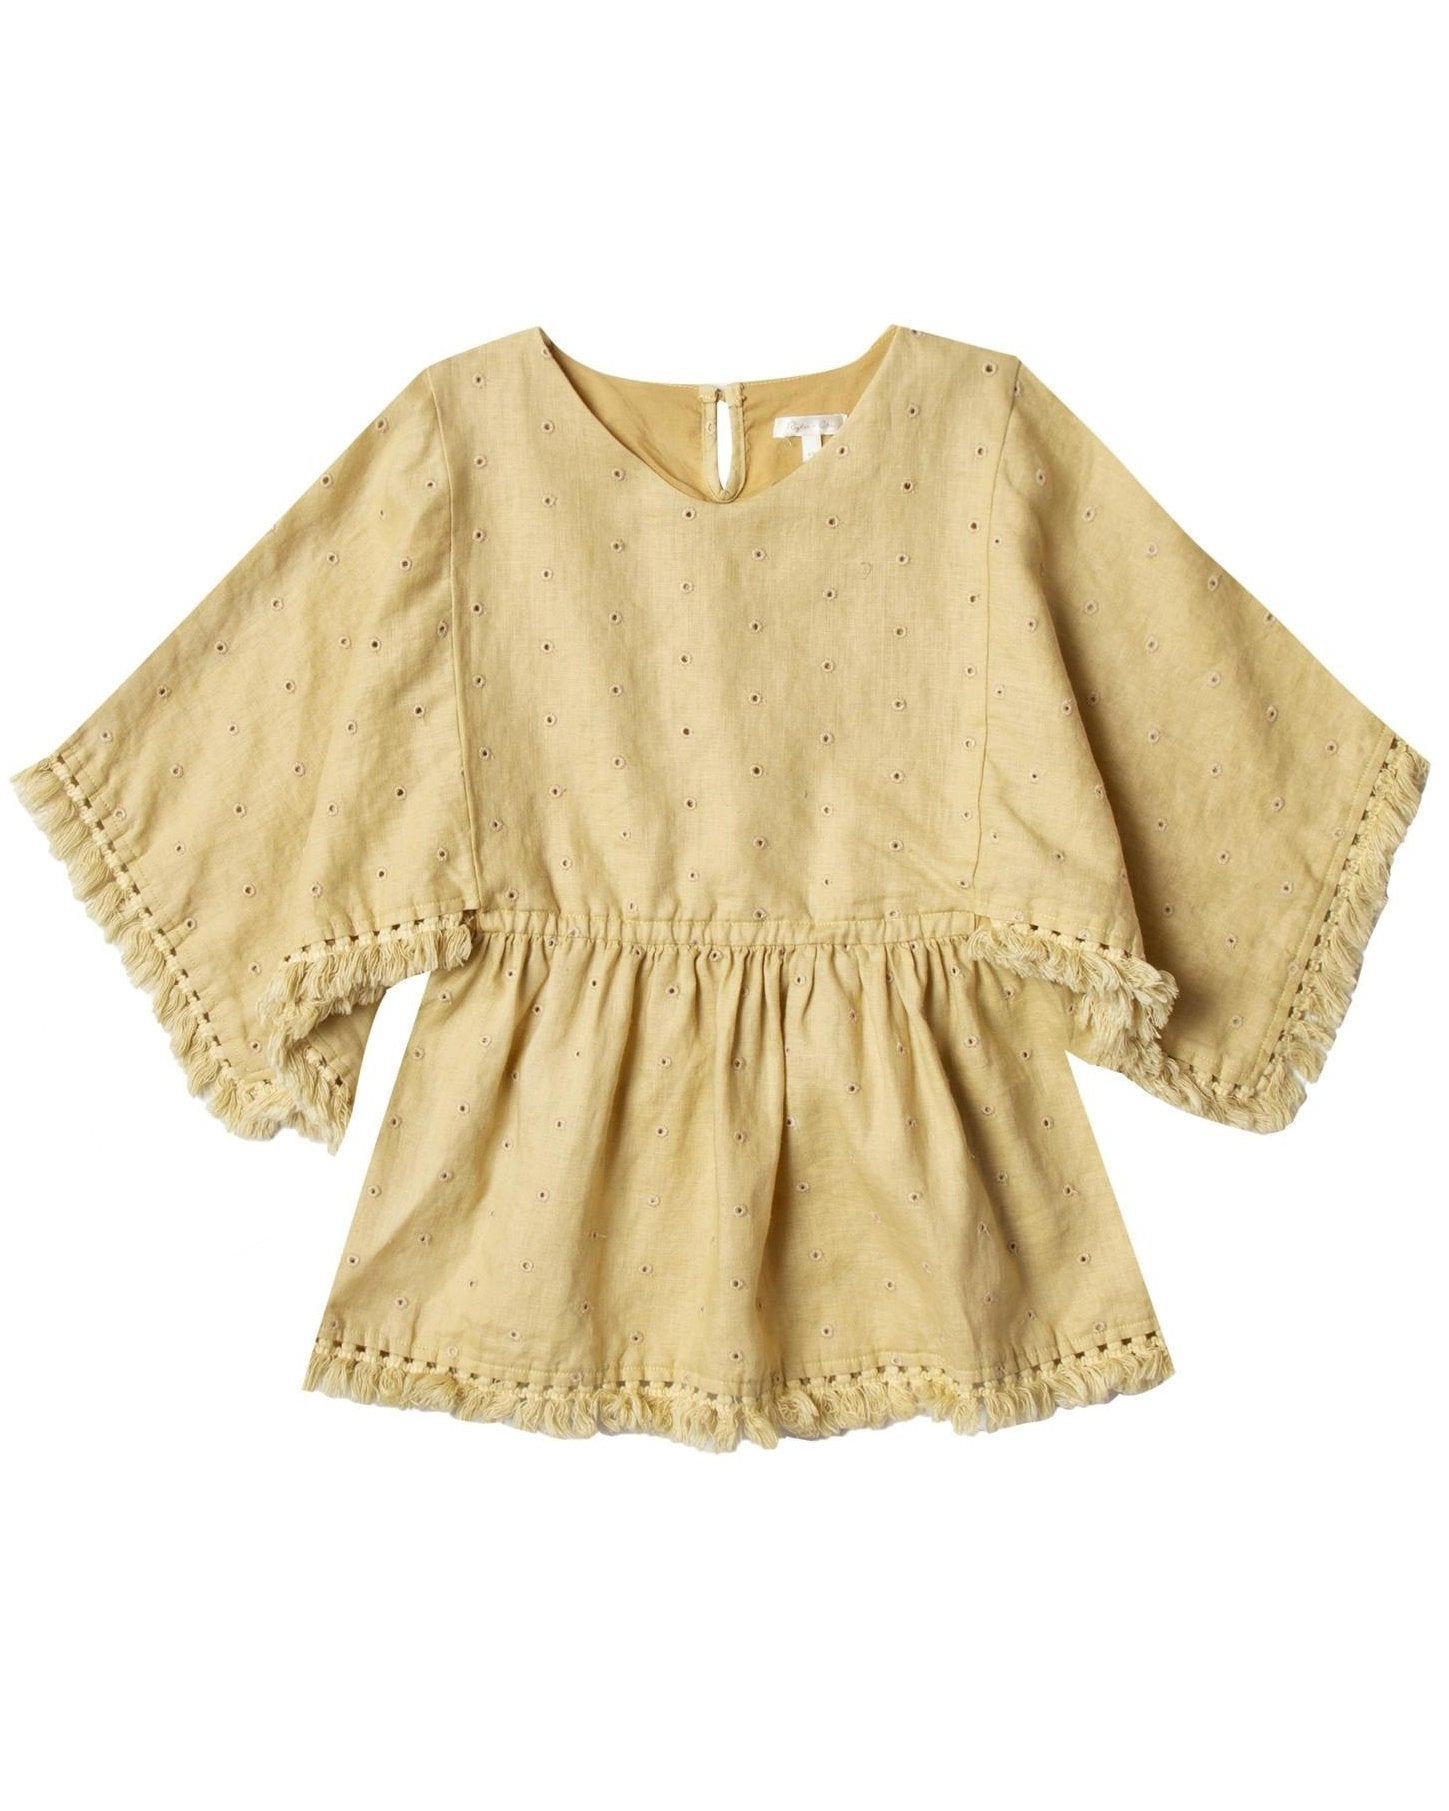 Little rylee + cru girl eyelet beach kaftan in citron